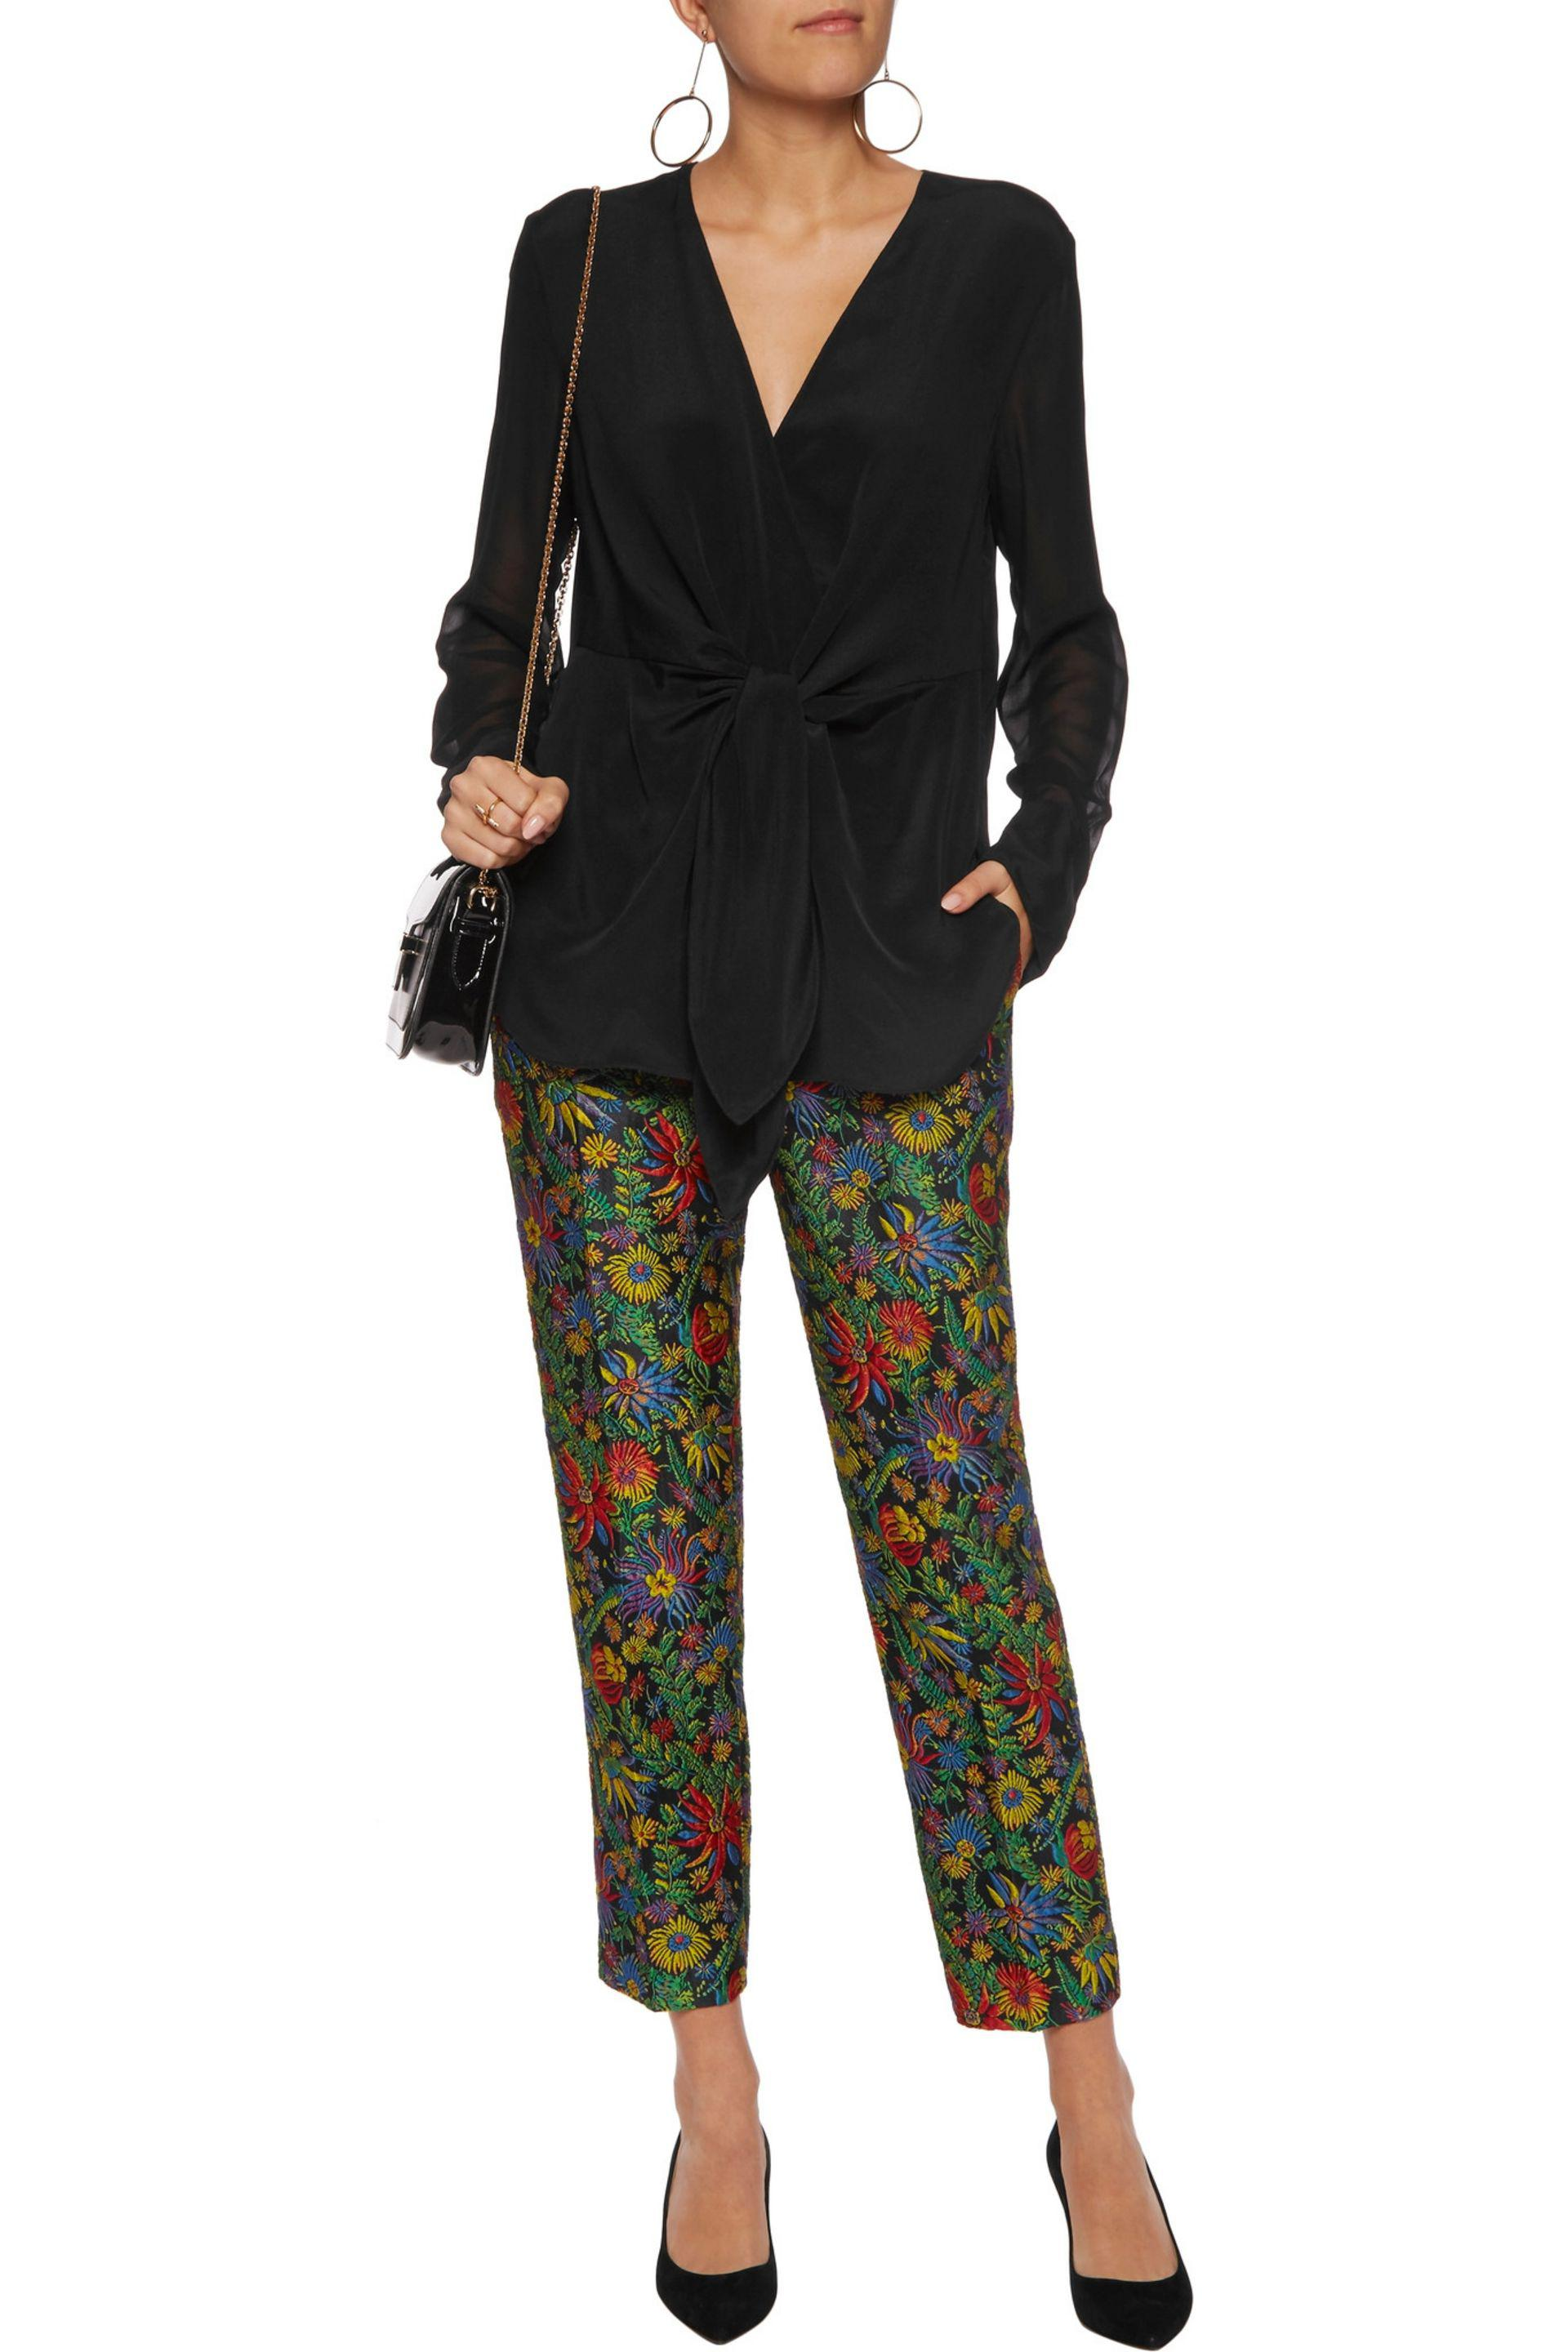 3.1 Phillip Lim Knotted Silk-crepe Blouse in Black